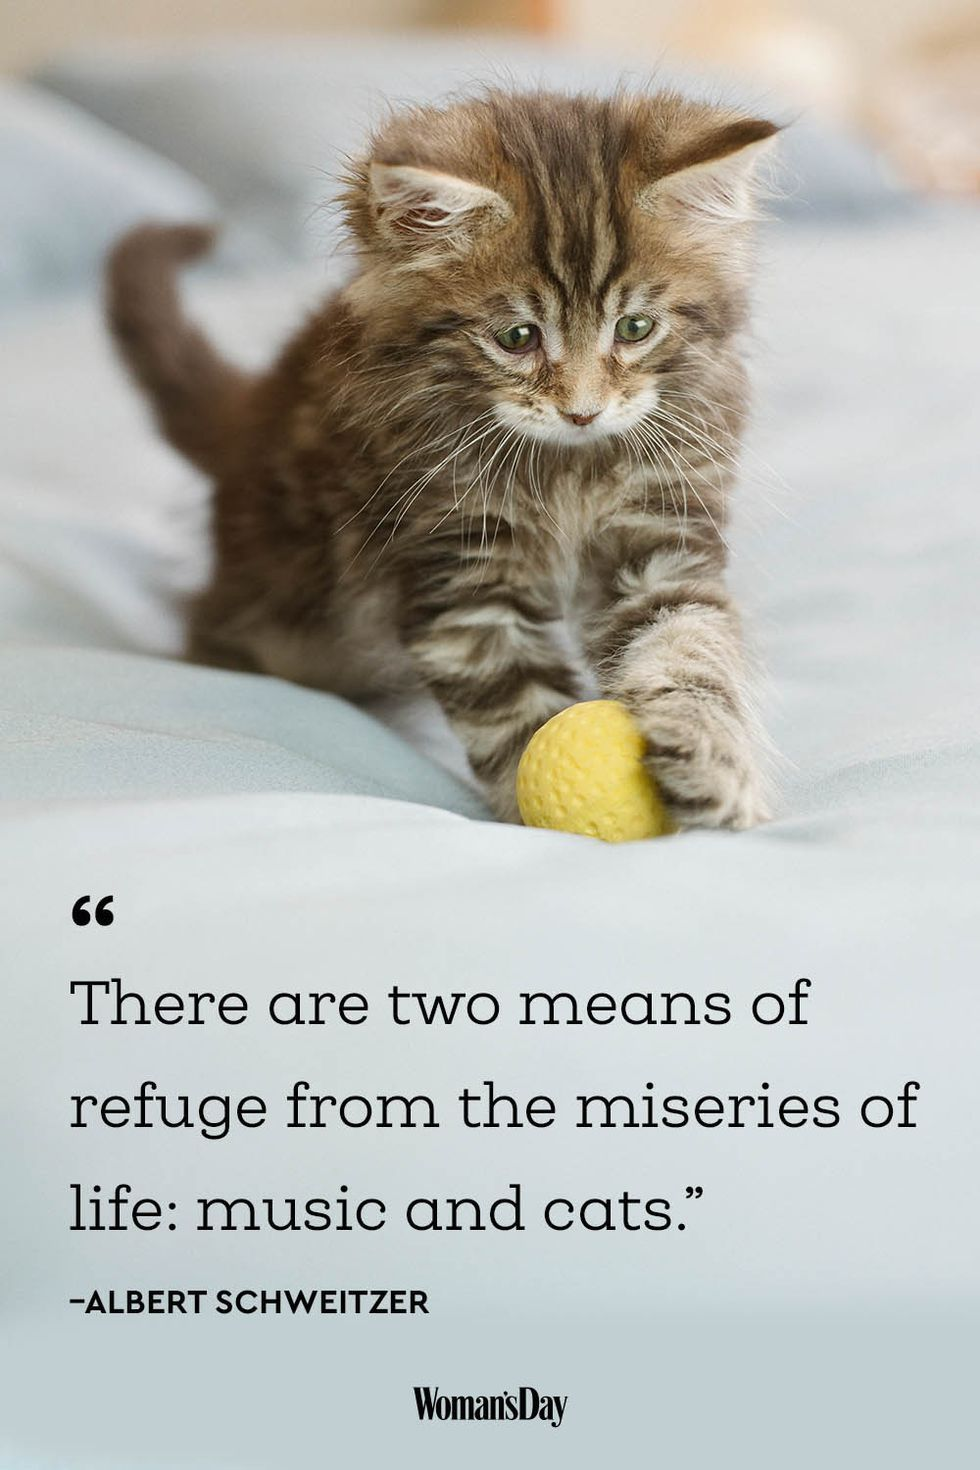 20 AdorableCat Quotes That Will Melt Your Heart Cat